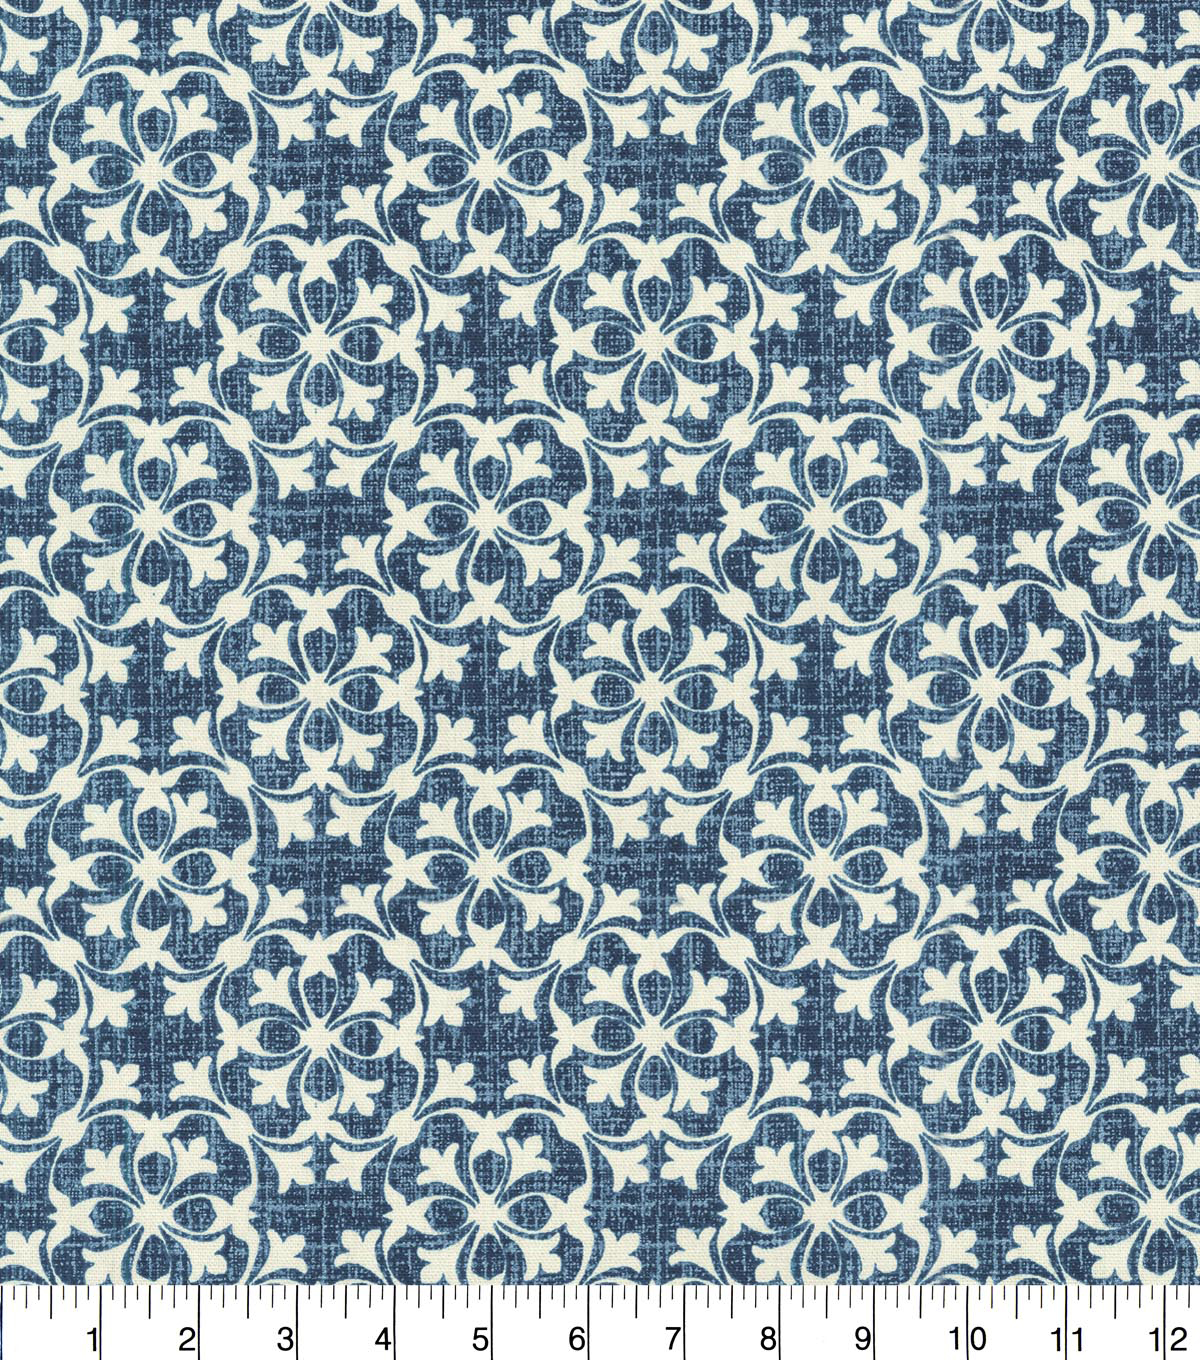 Home Decor 8\u0022x8\u0022 Fabric Swatch-Waverly Courtyard SD Midnight